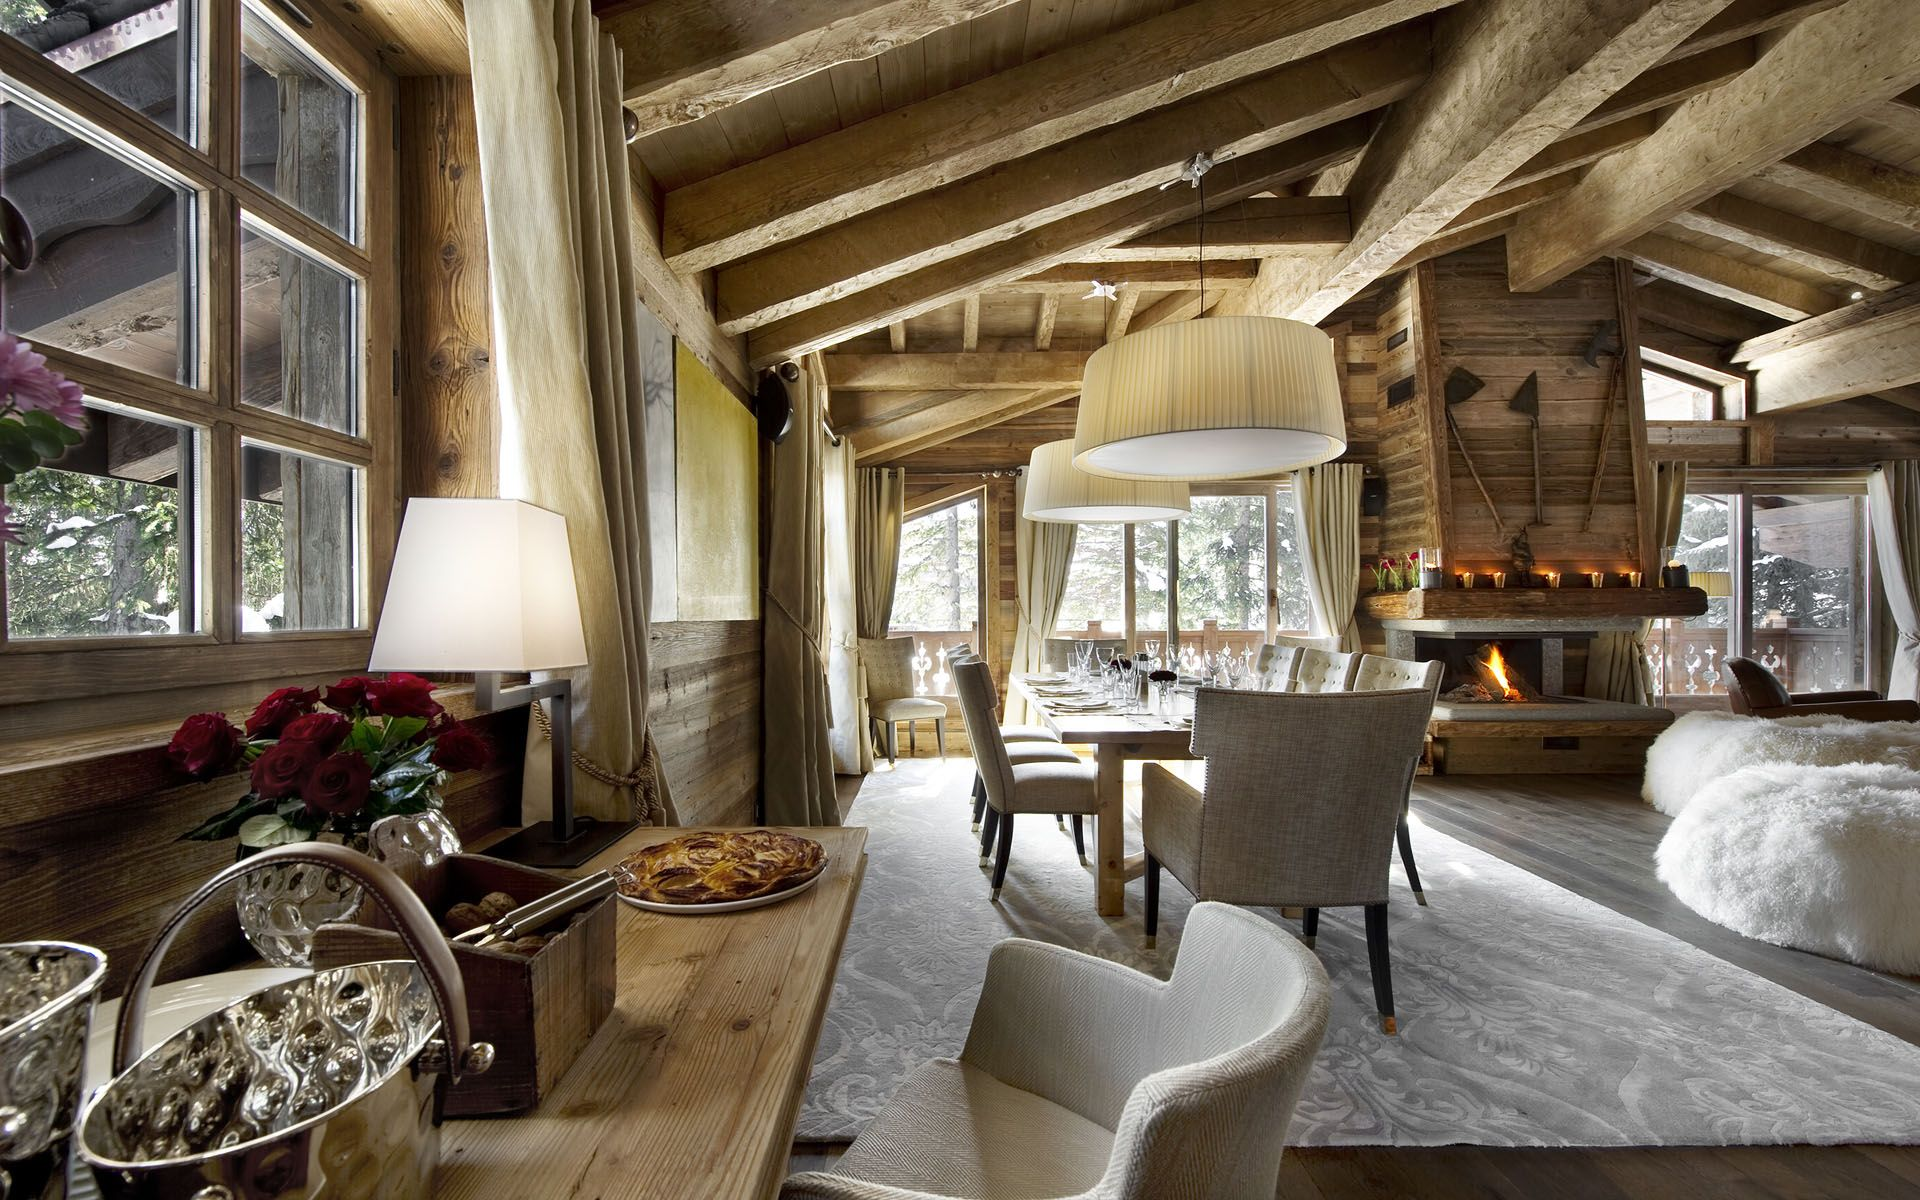 Swiss Chalet Decor Swiss Chalet Interior Design Bjetjtcom The Largest Collection